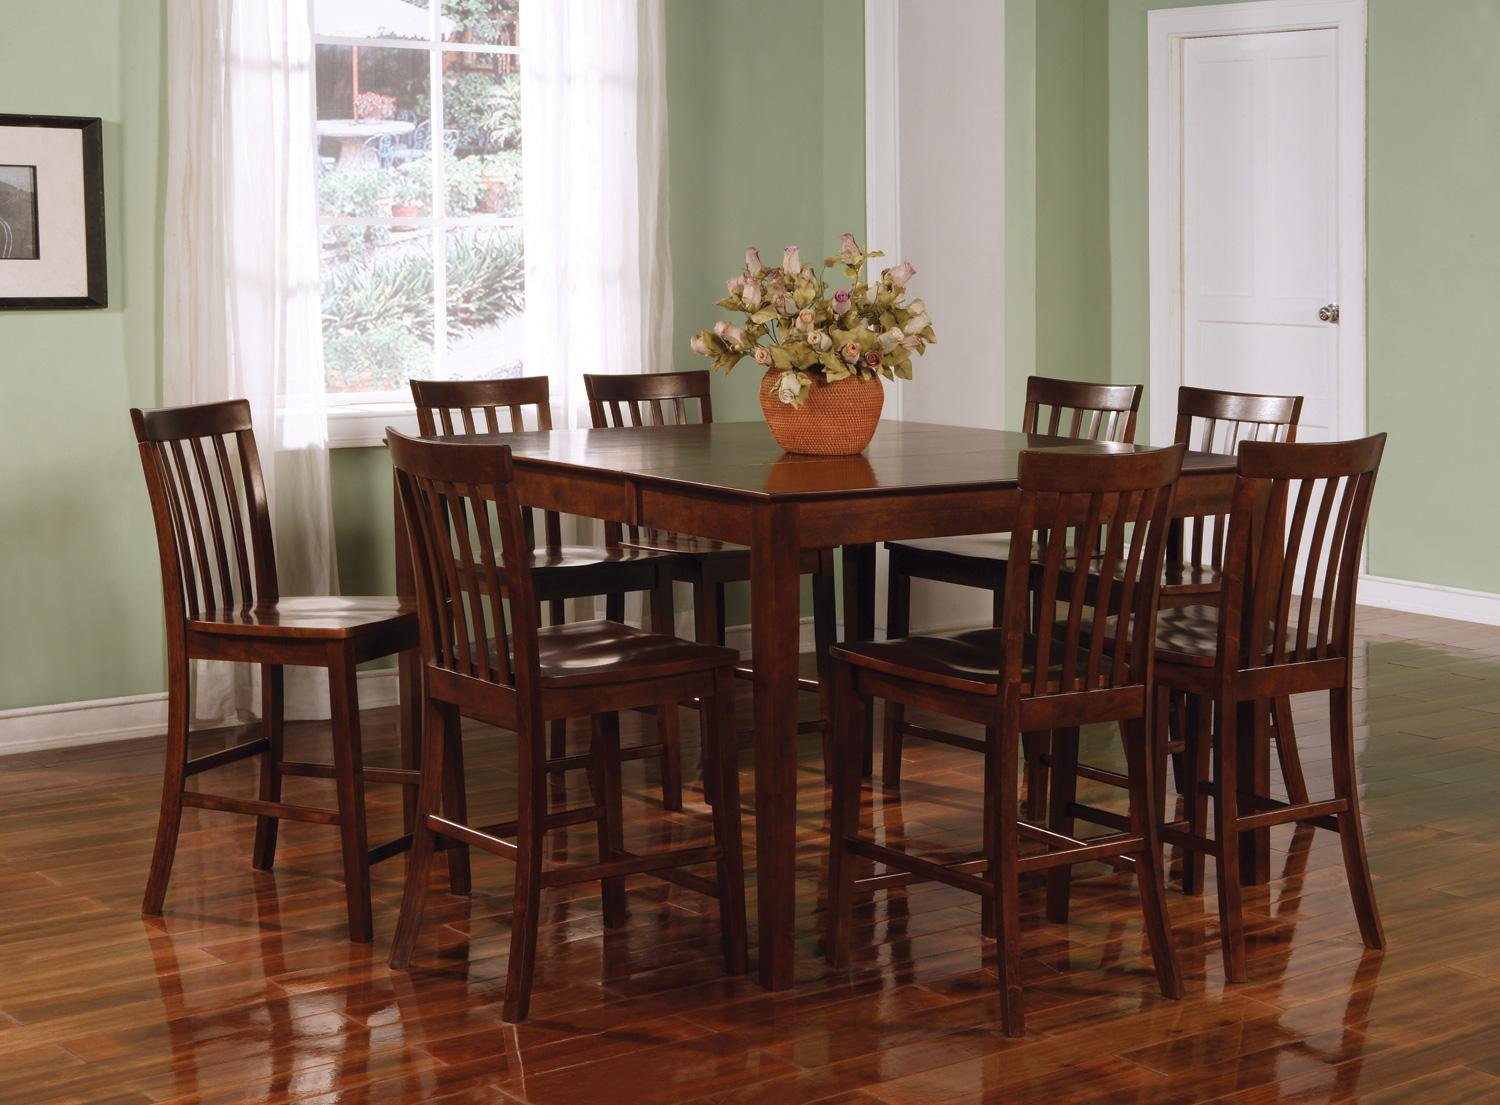 table chairs mcgregor piece sets wood dining room height freight set american counter brown